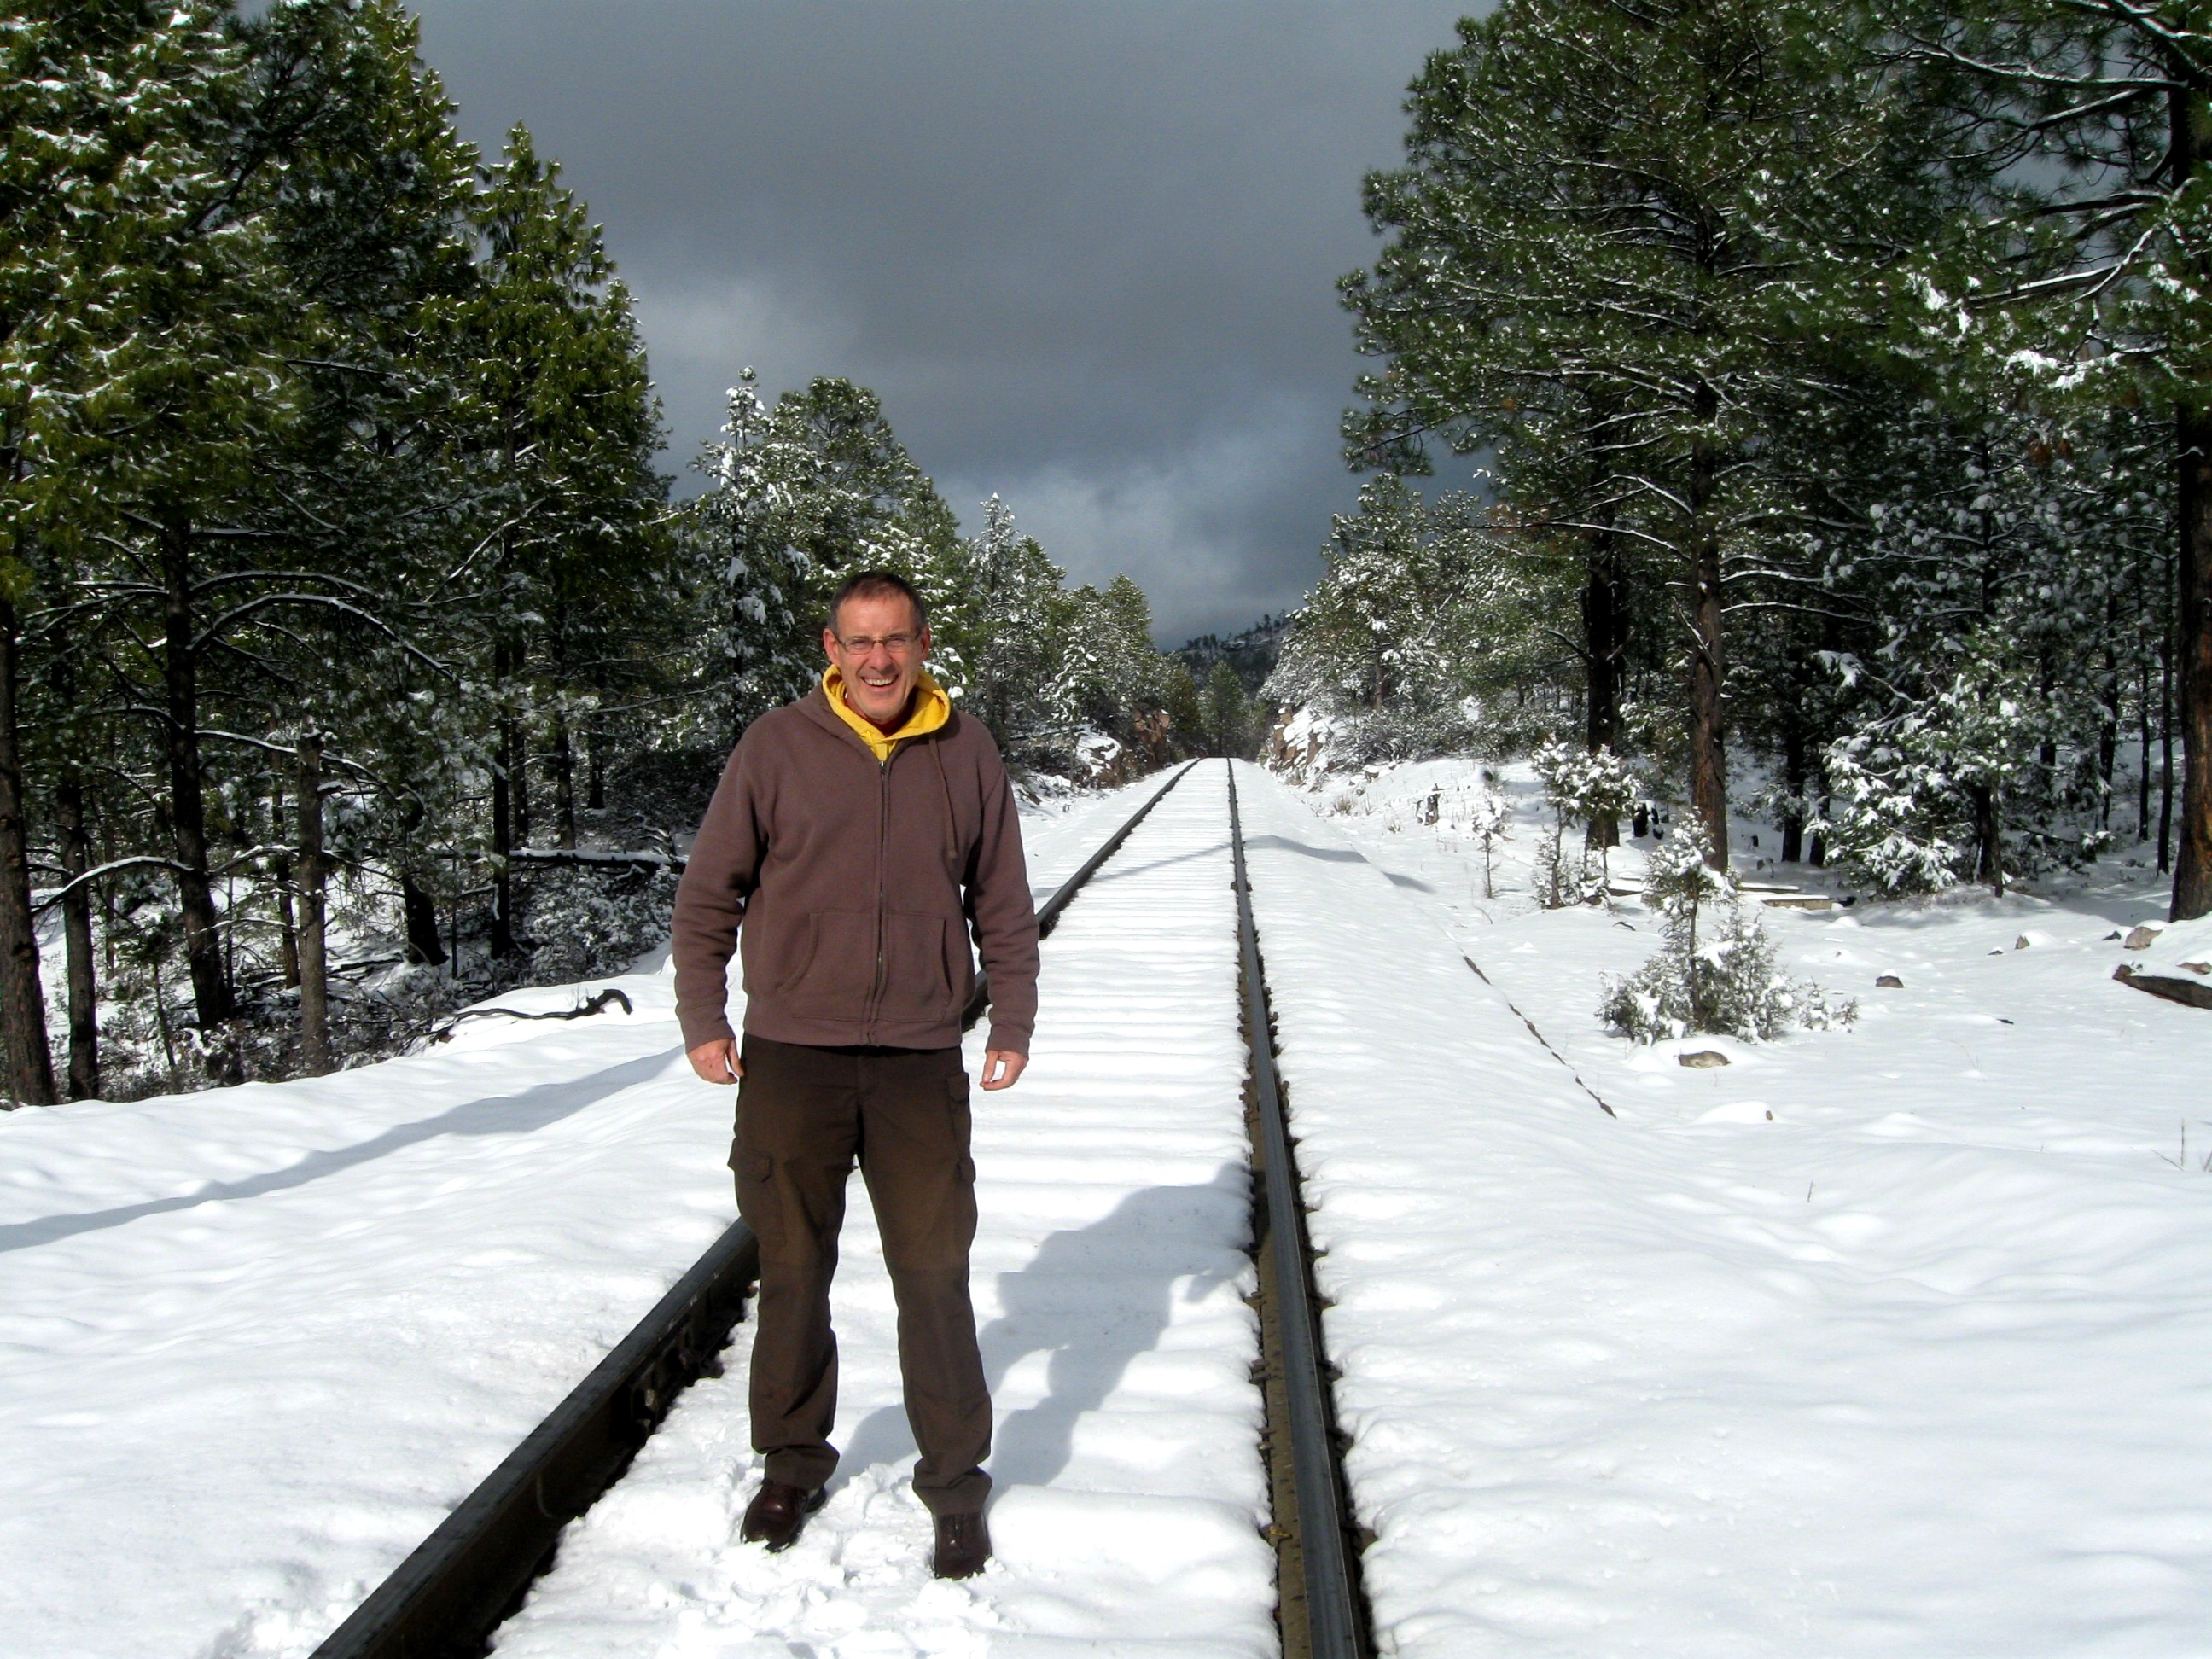 It snowed big time in January 2013 along the Copper Canyon train.